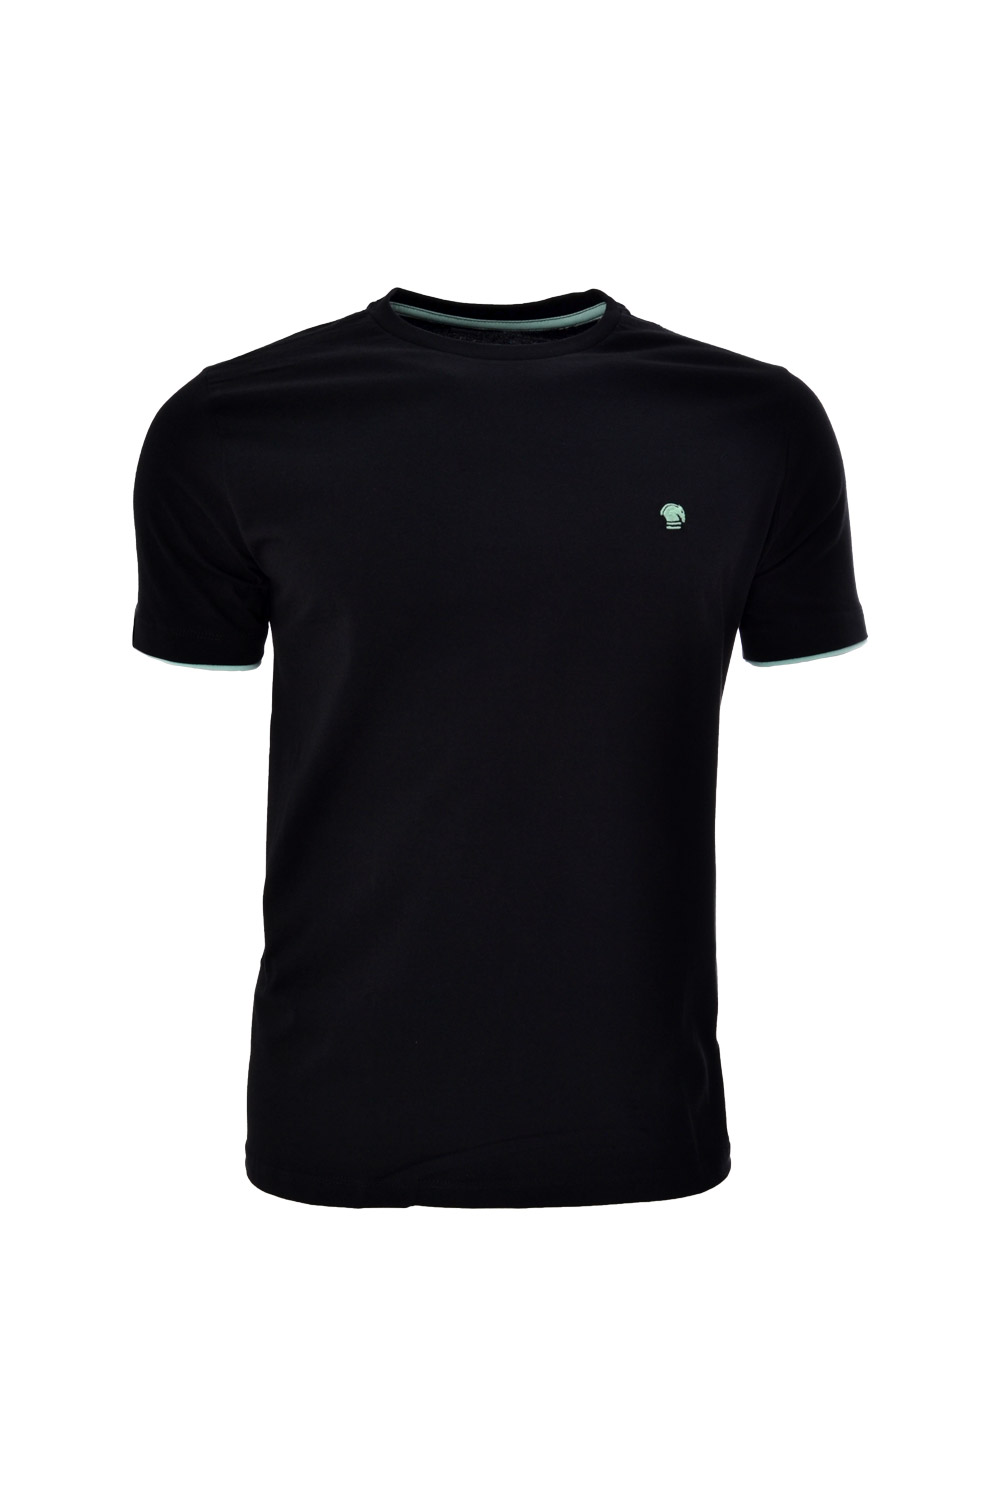 CAMISETA MC BLUES SUPER SLIM ALGODAO COMPOSE - PRETO